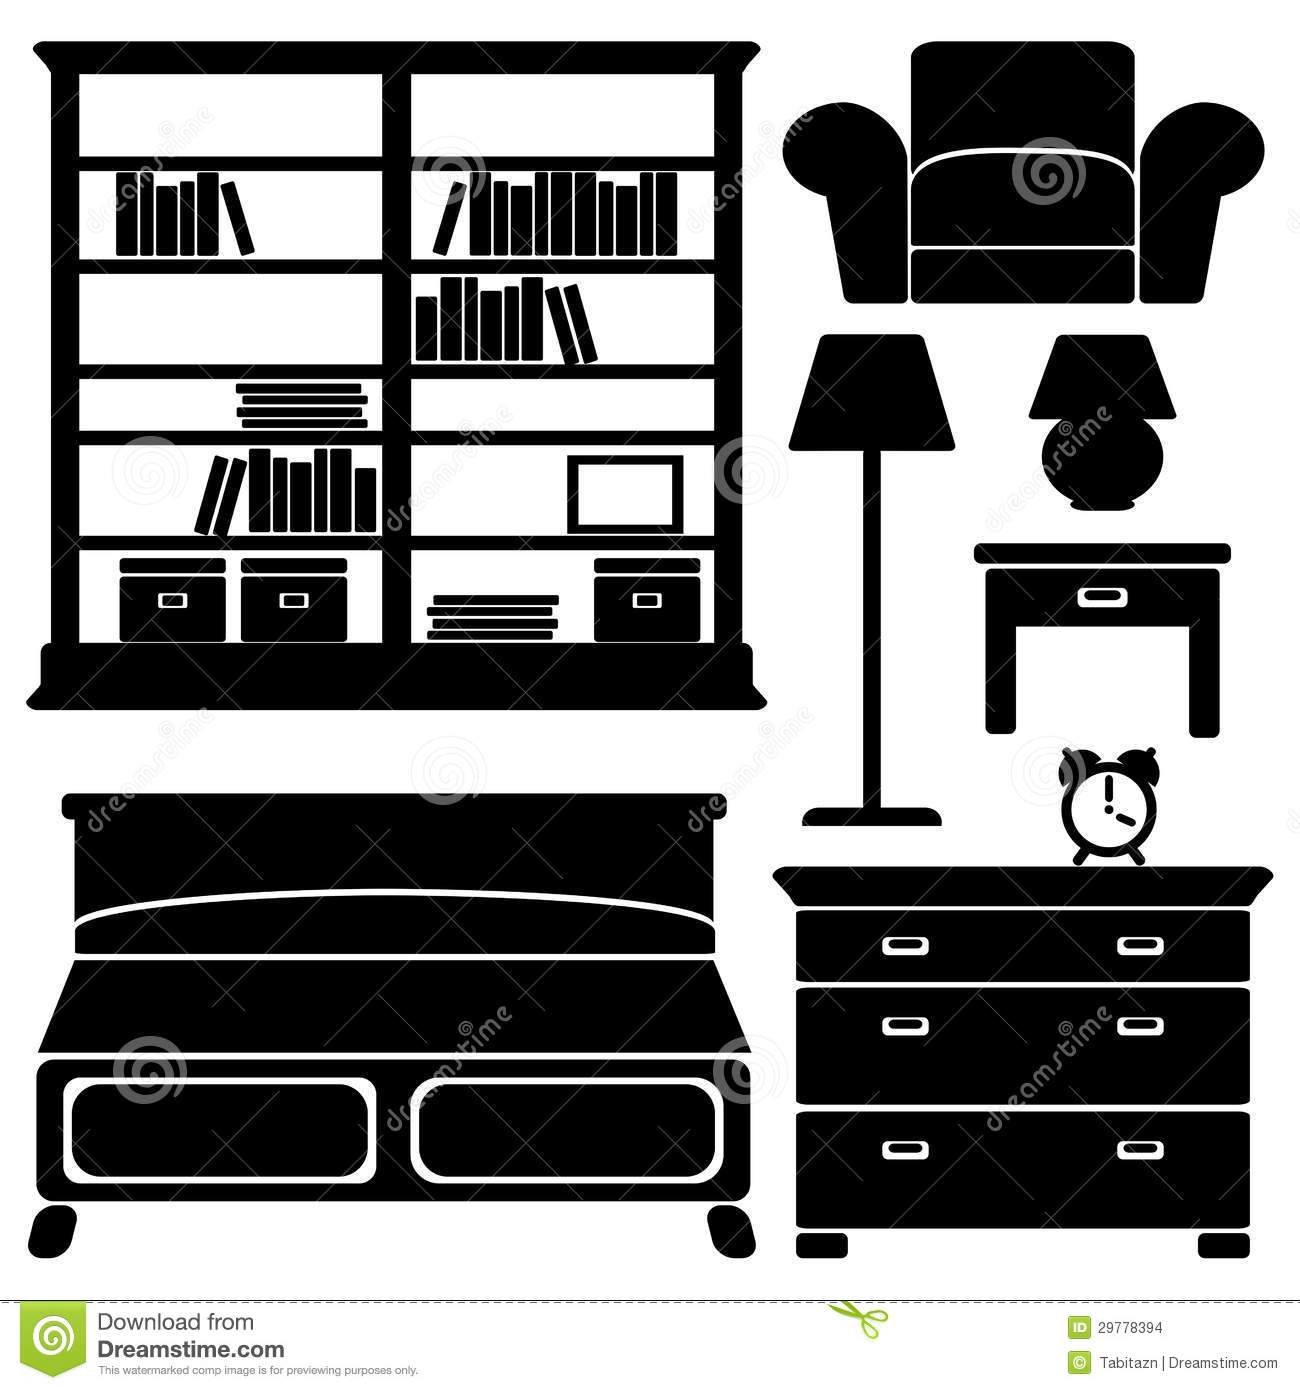 Bedroom Interior Design Set Furniture Vector ~ Furniture icons bedroom set stock vector illustration